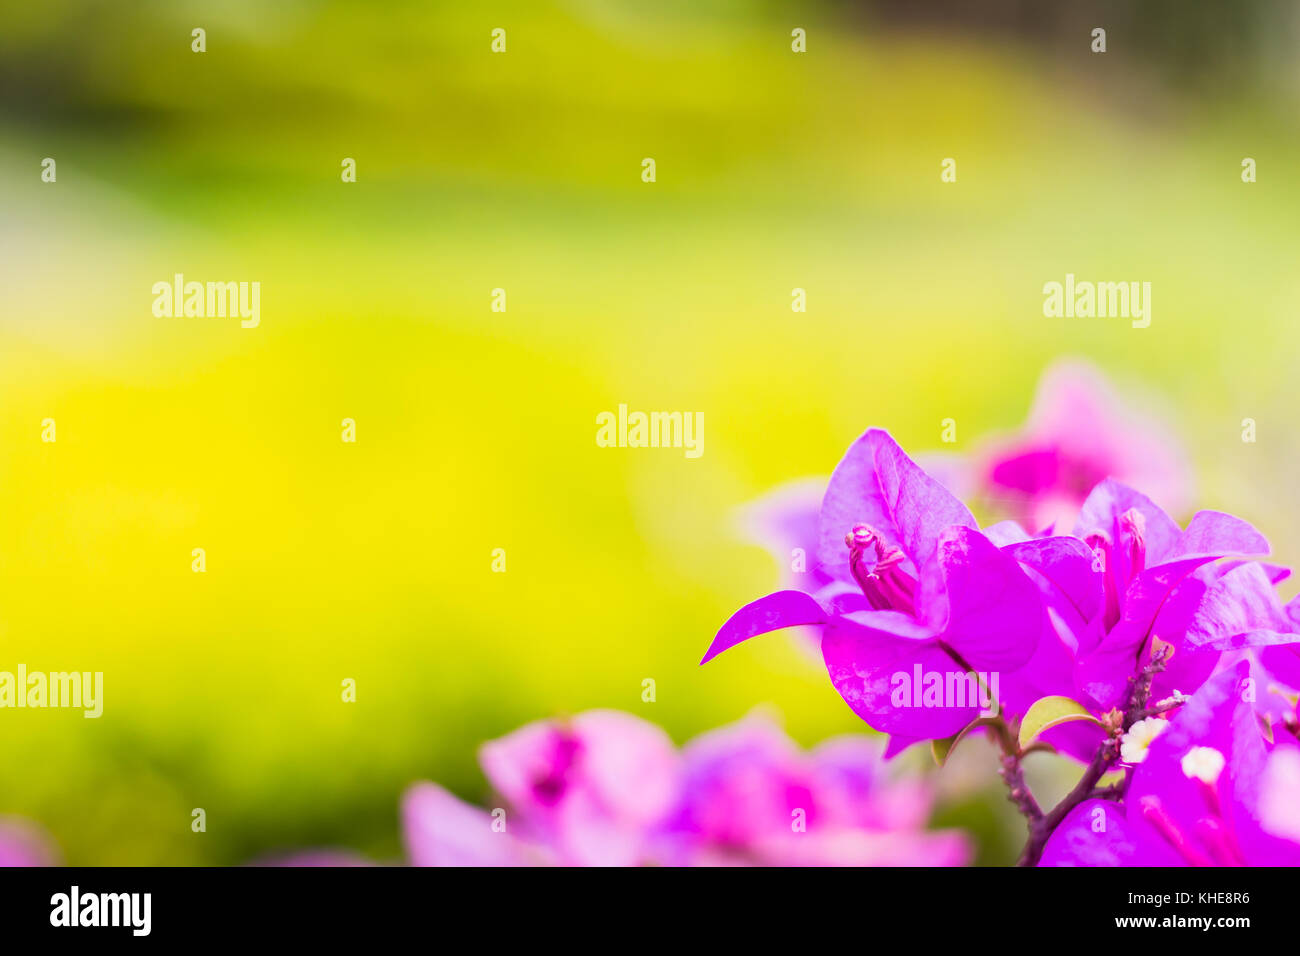 bougainvillea flowers purple color with yellow blured background warm tone - Stock Image